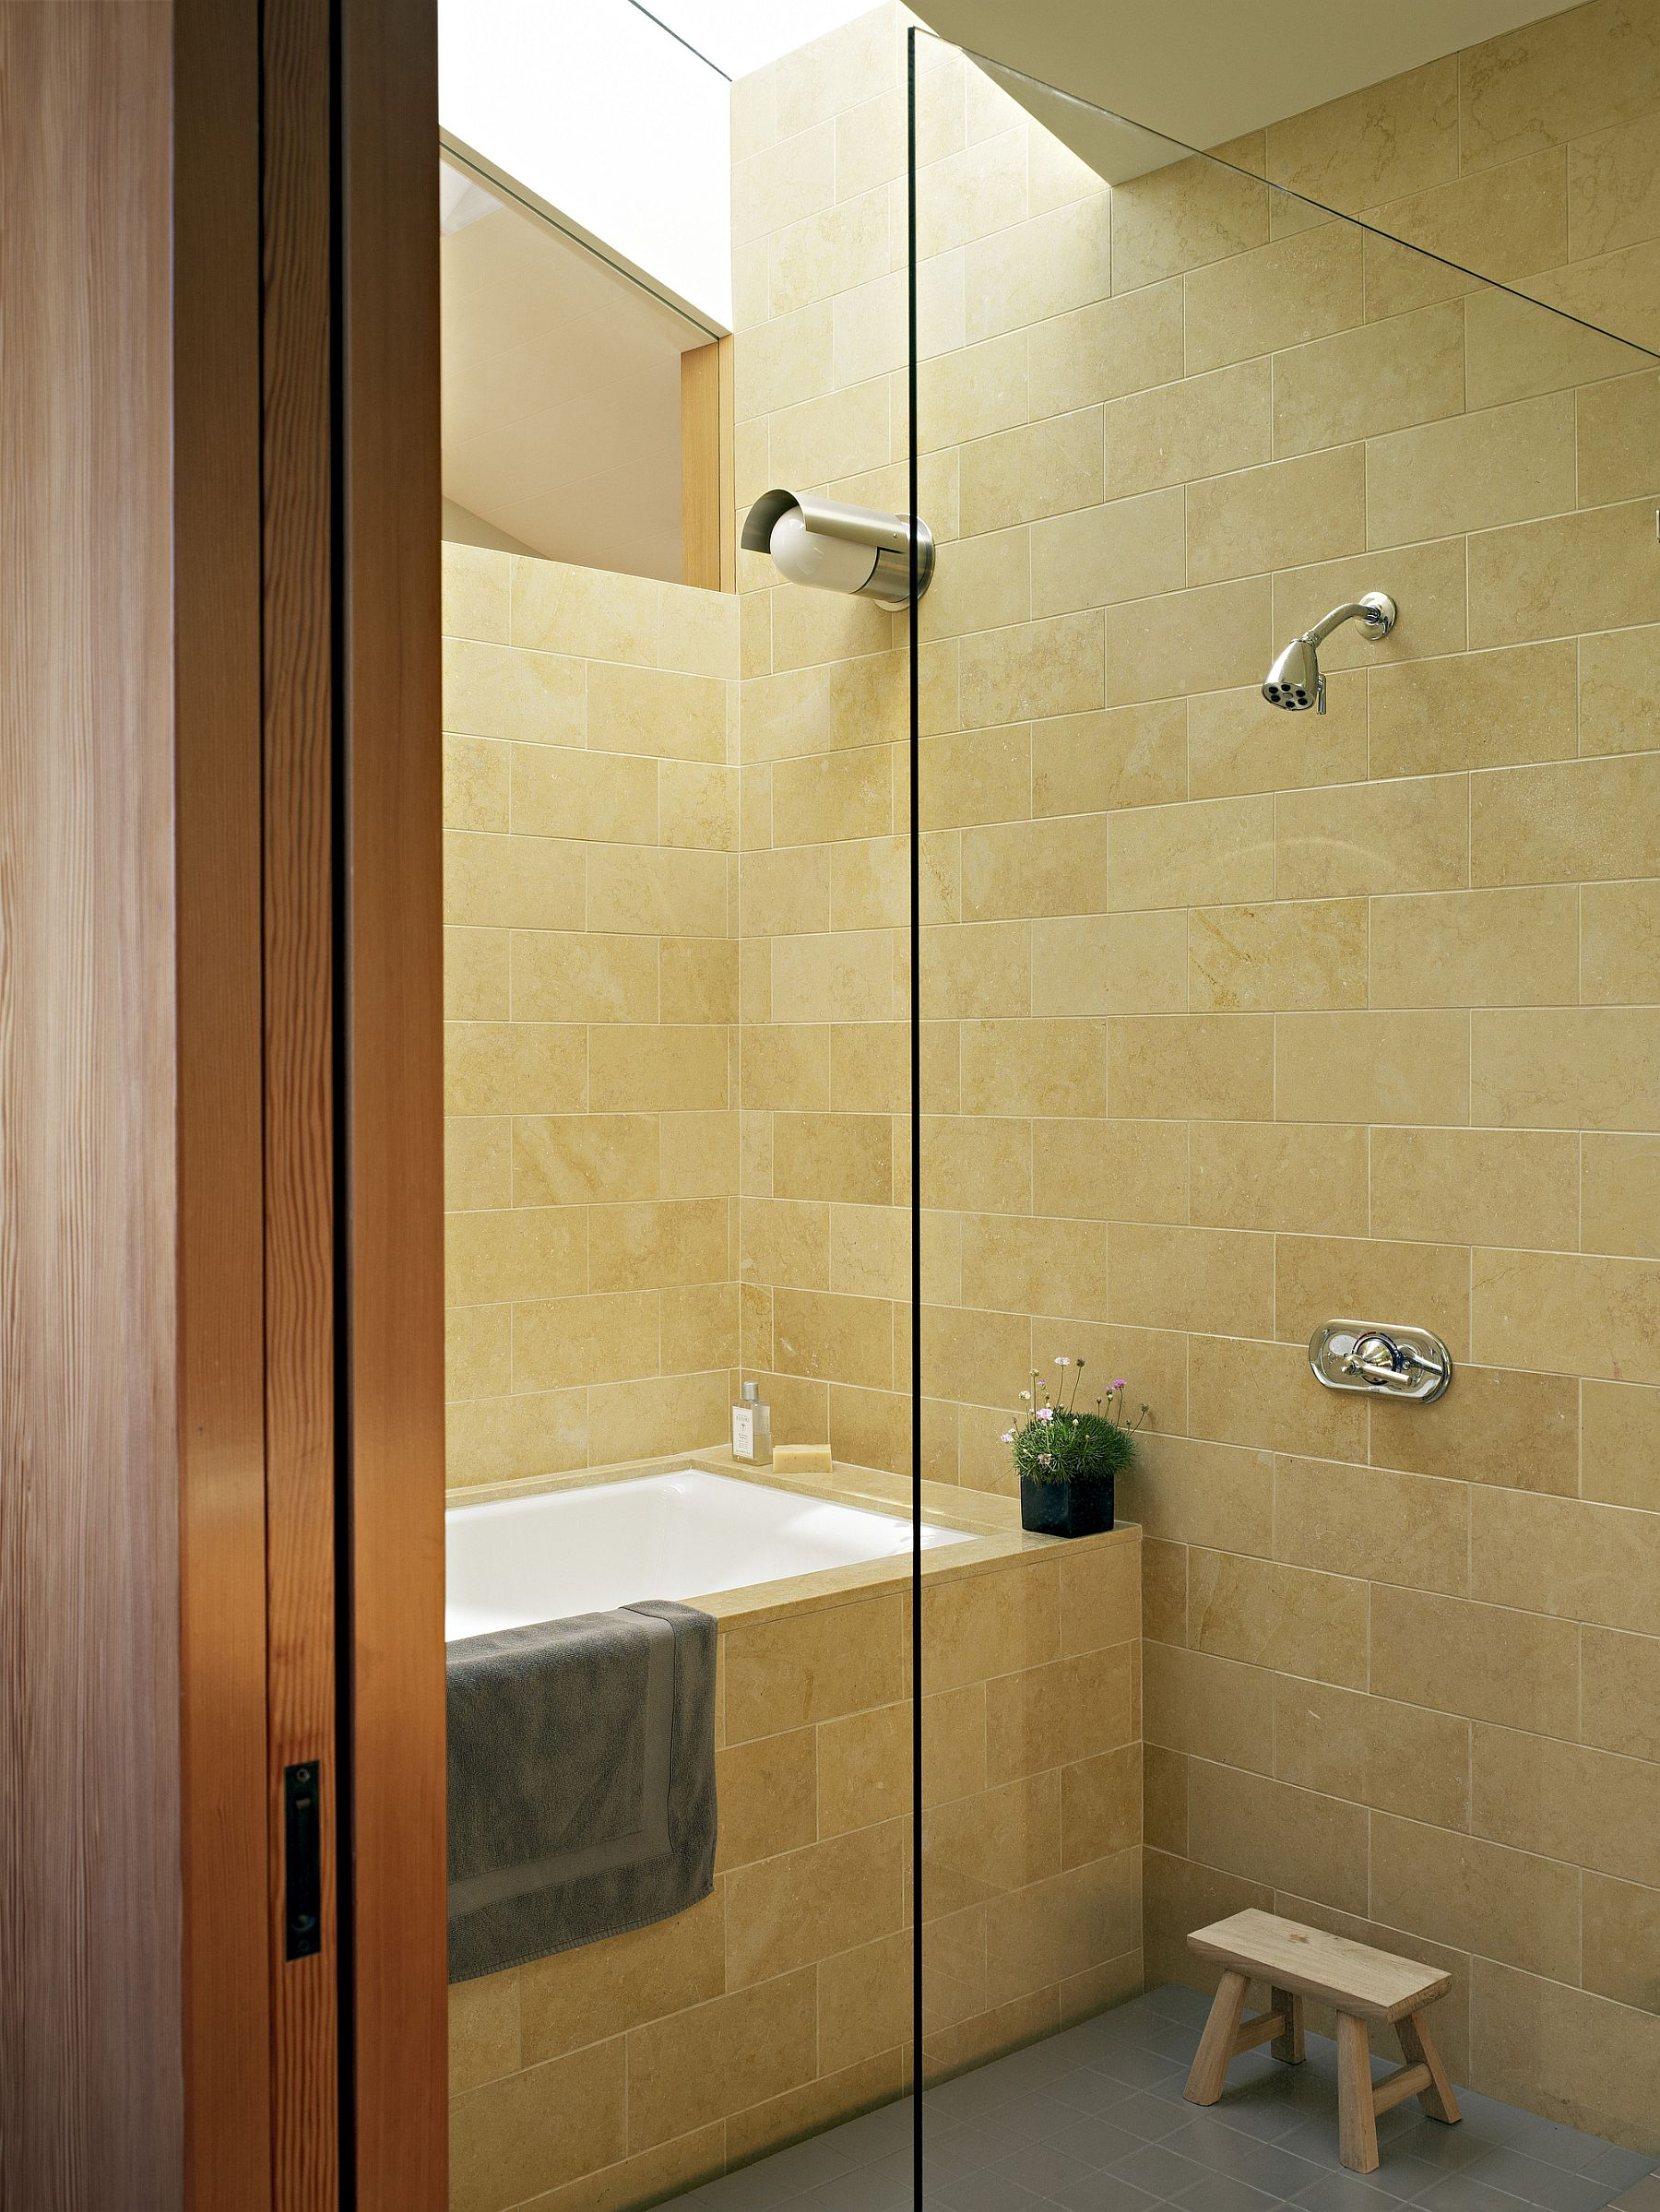 Skylight brings ample natural light into the modern bathroom